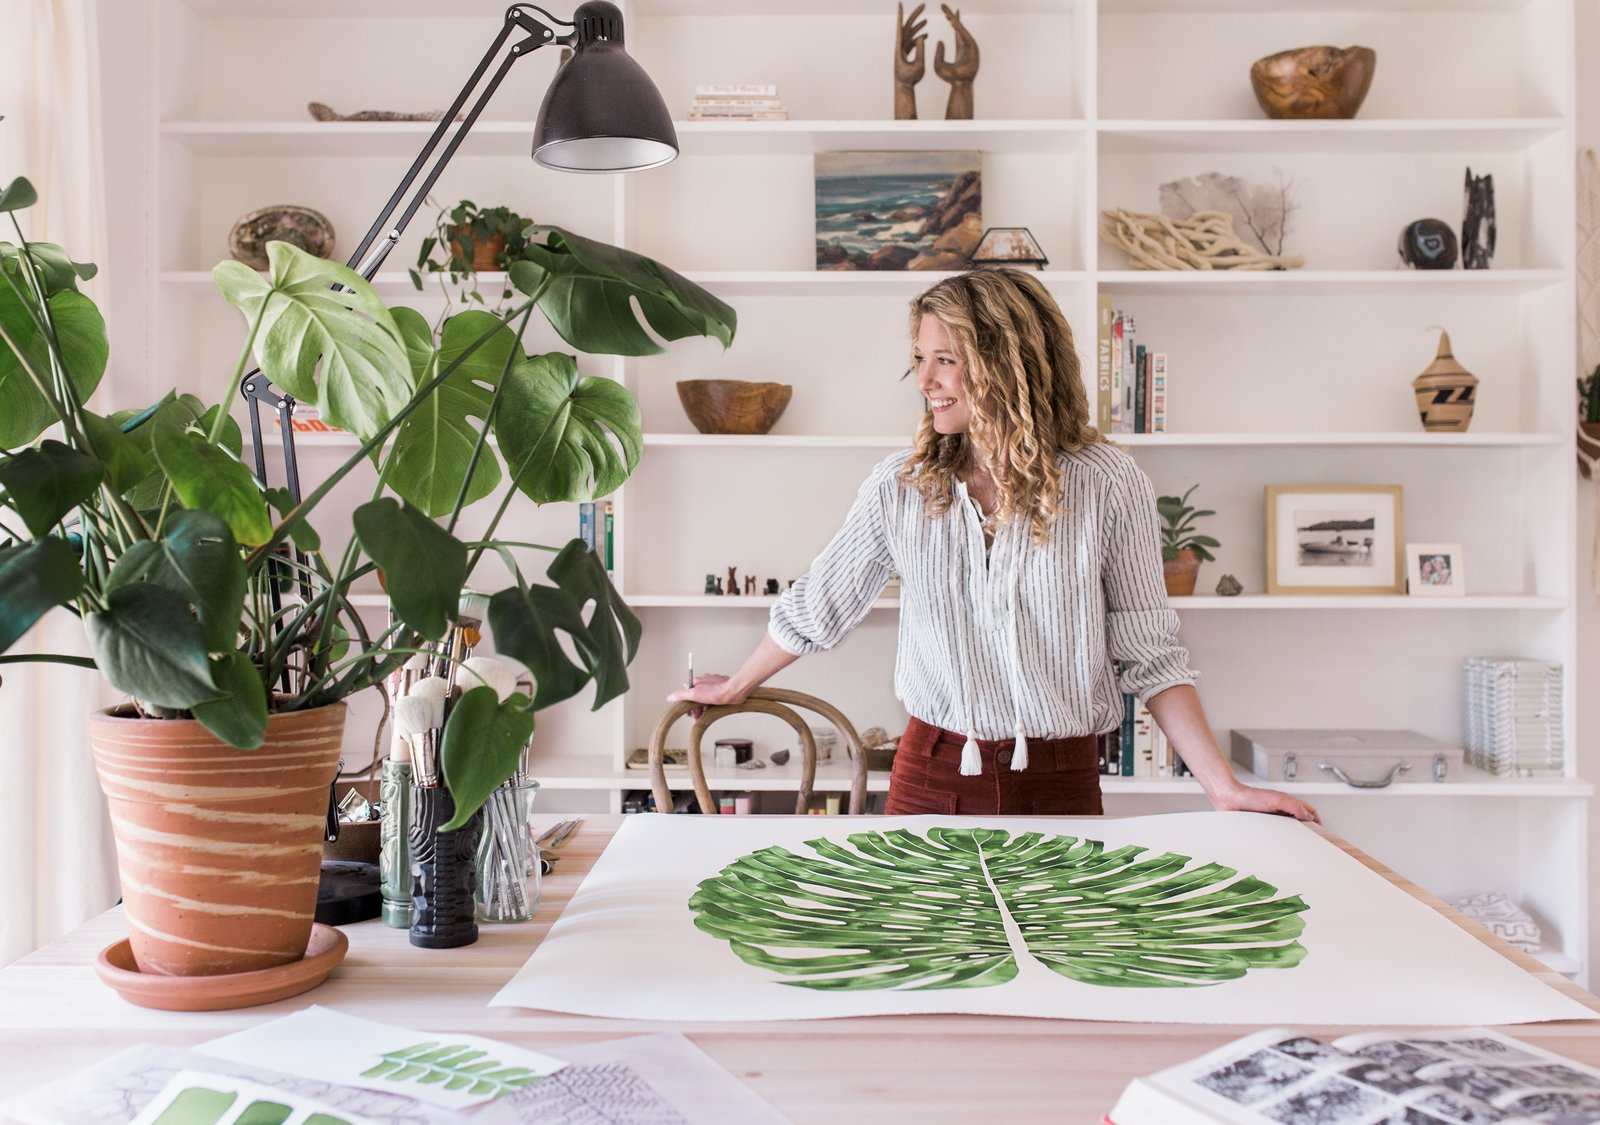 """Jenny describes white space as equally important to her work as her signature green plantlife. """"I'm all about white, negative space. It's just as important as a full page of colour,"""" she says.  Photo 7 of 7 in The Great Indoors"""